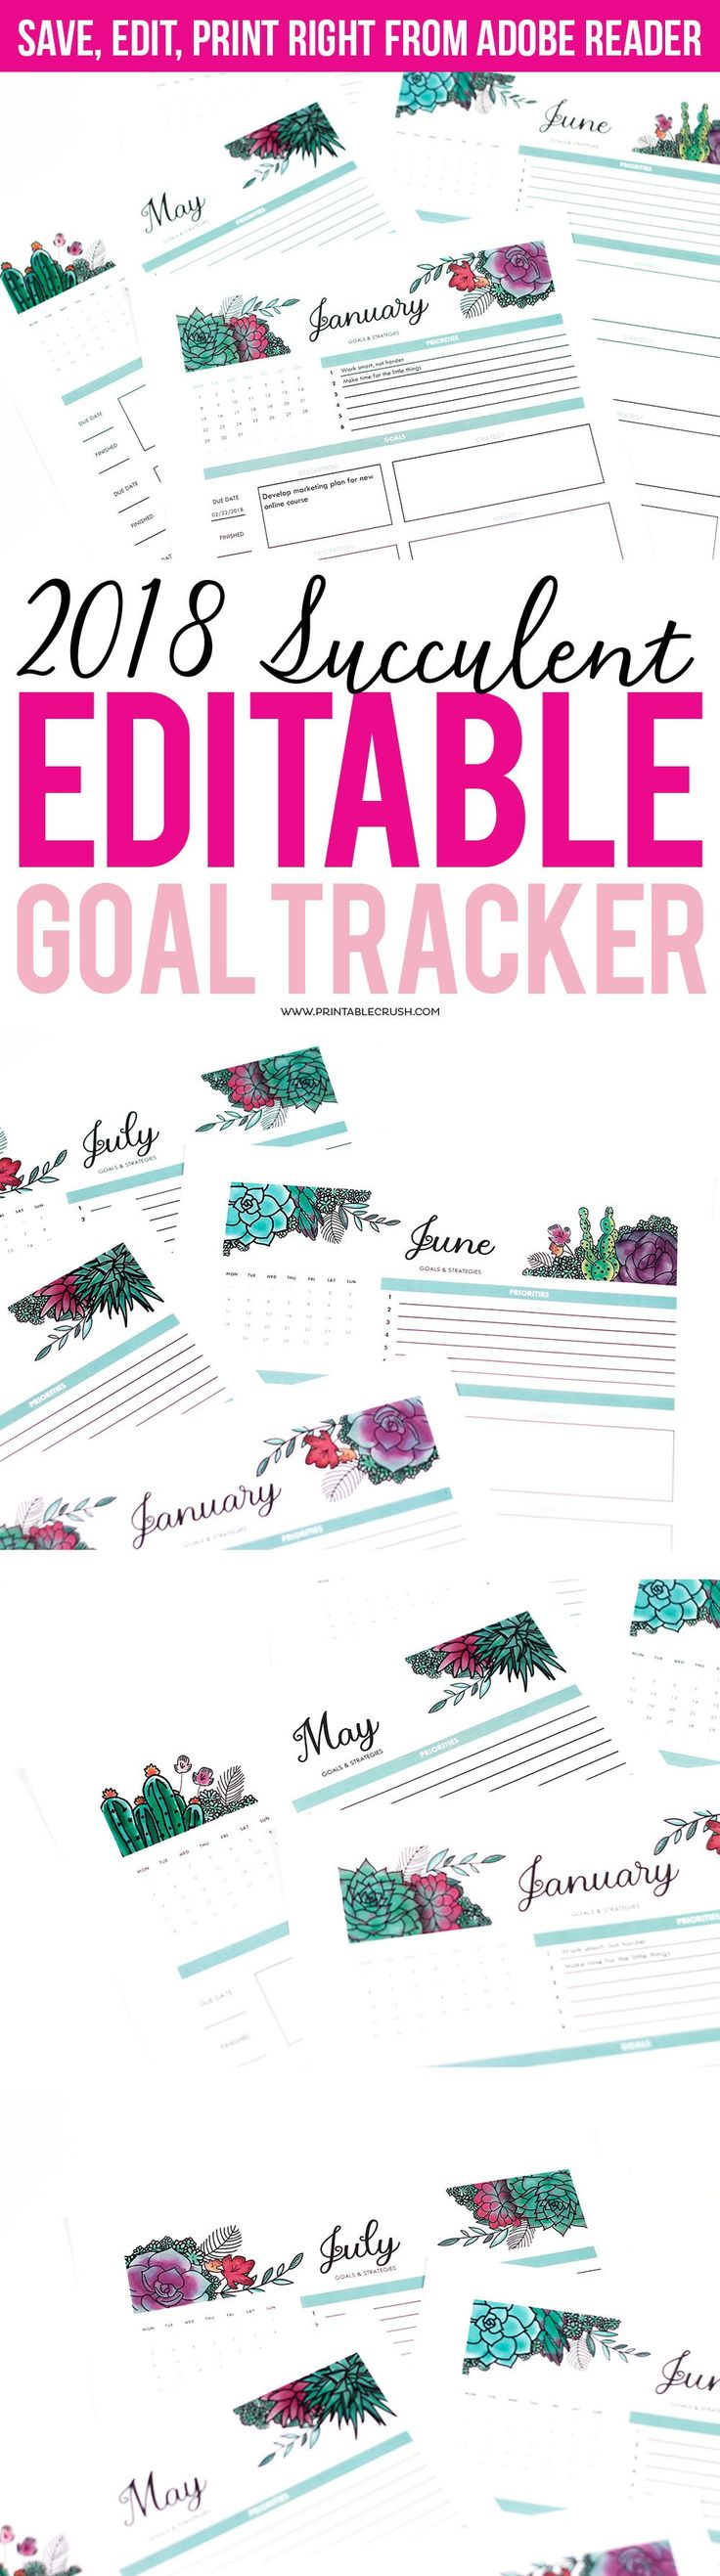 Succulents Editable 2018 Goal Tracker Printable. This is THE MOST functional Goal Tracker Printable-Use it to prioritize your goals and come up with strategies to implement them.